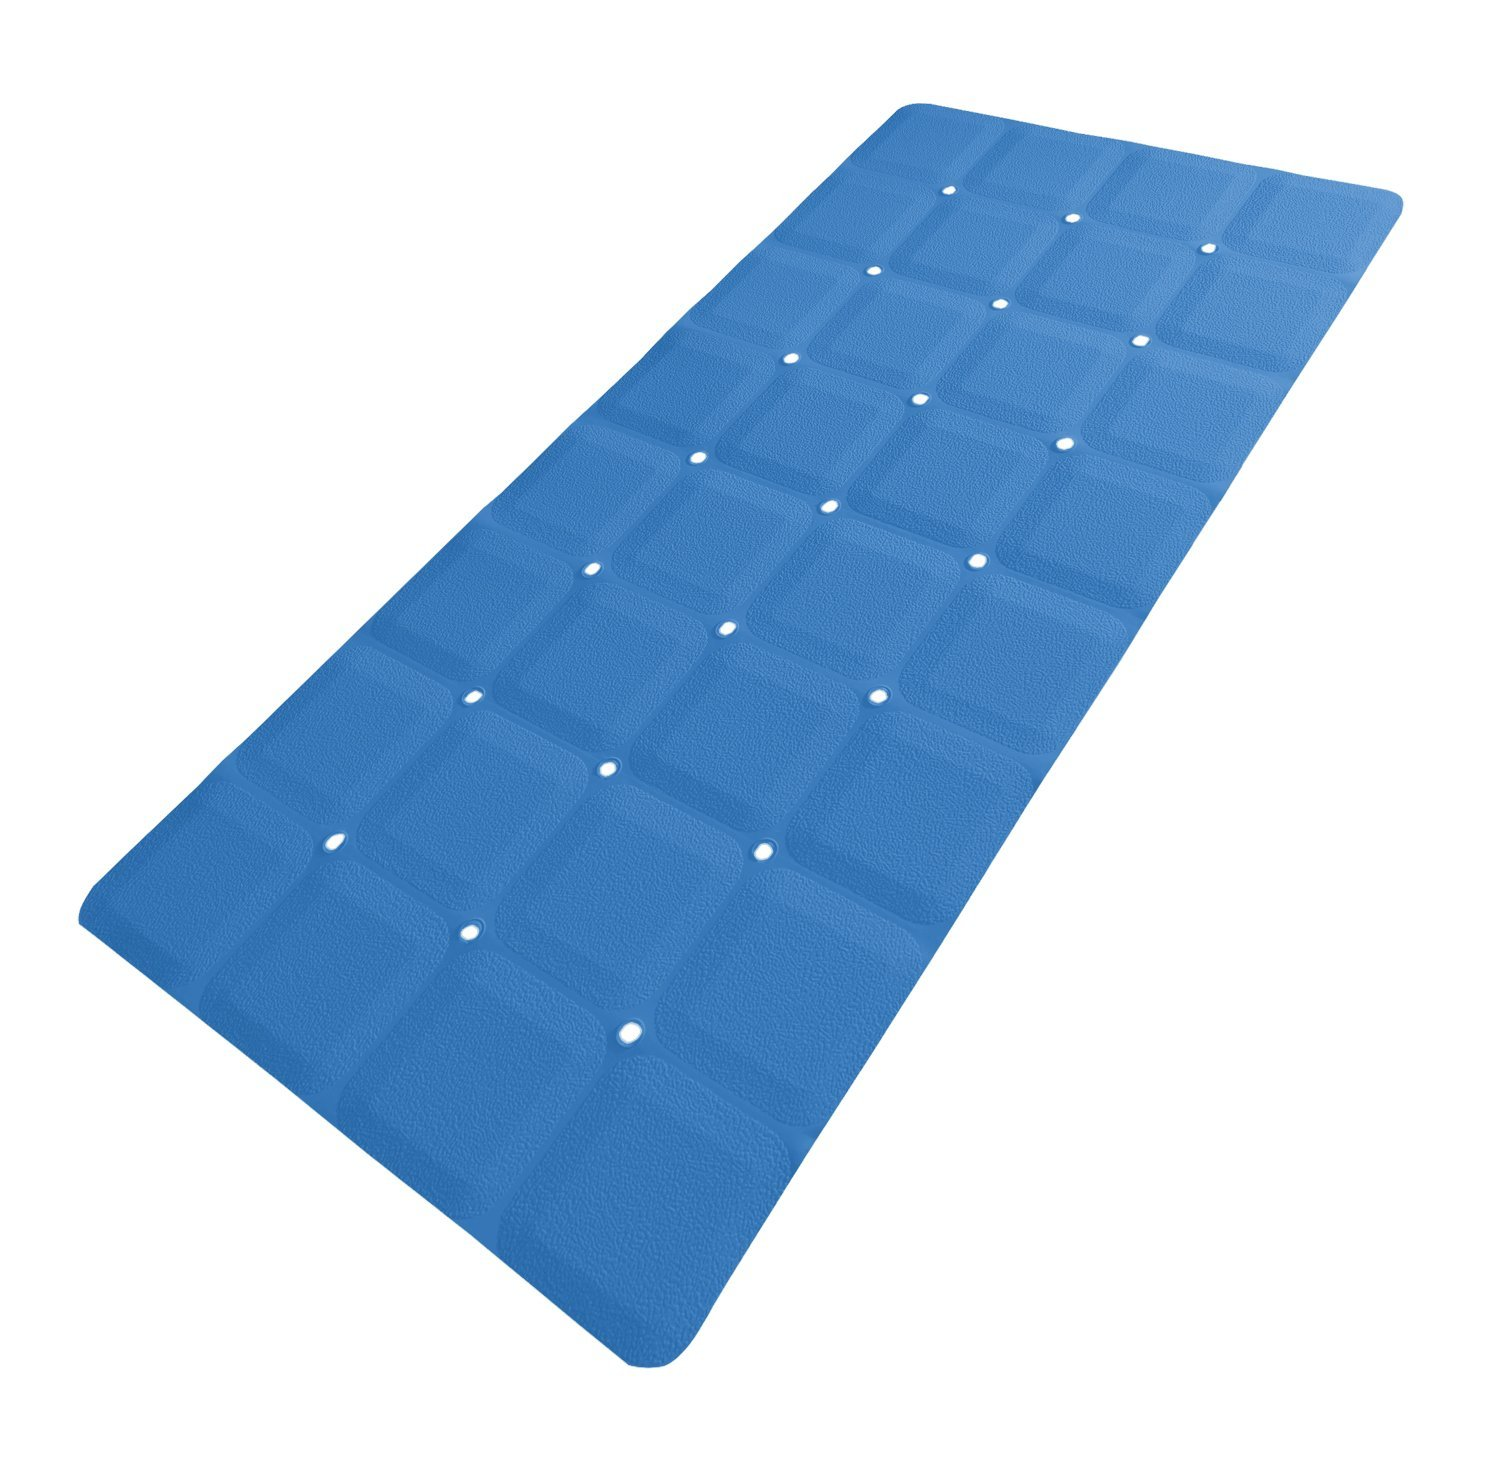 Sultan's Linens Foldable Rubber Bath Mat